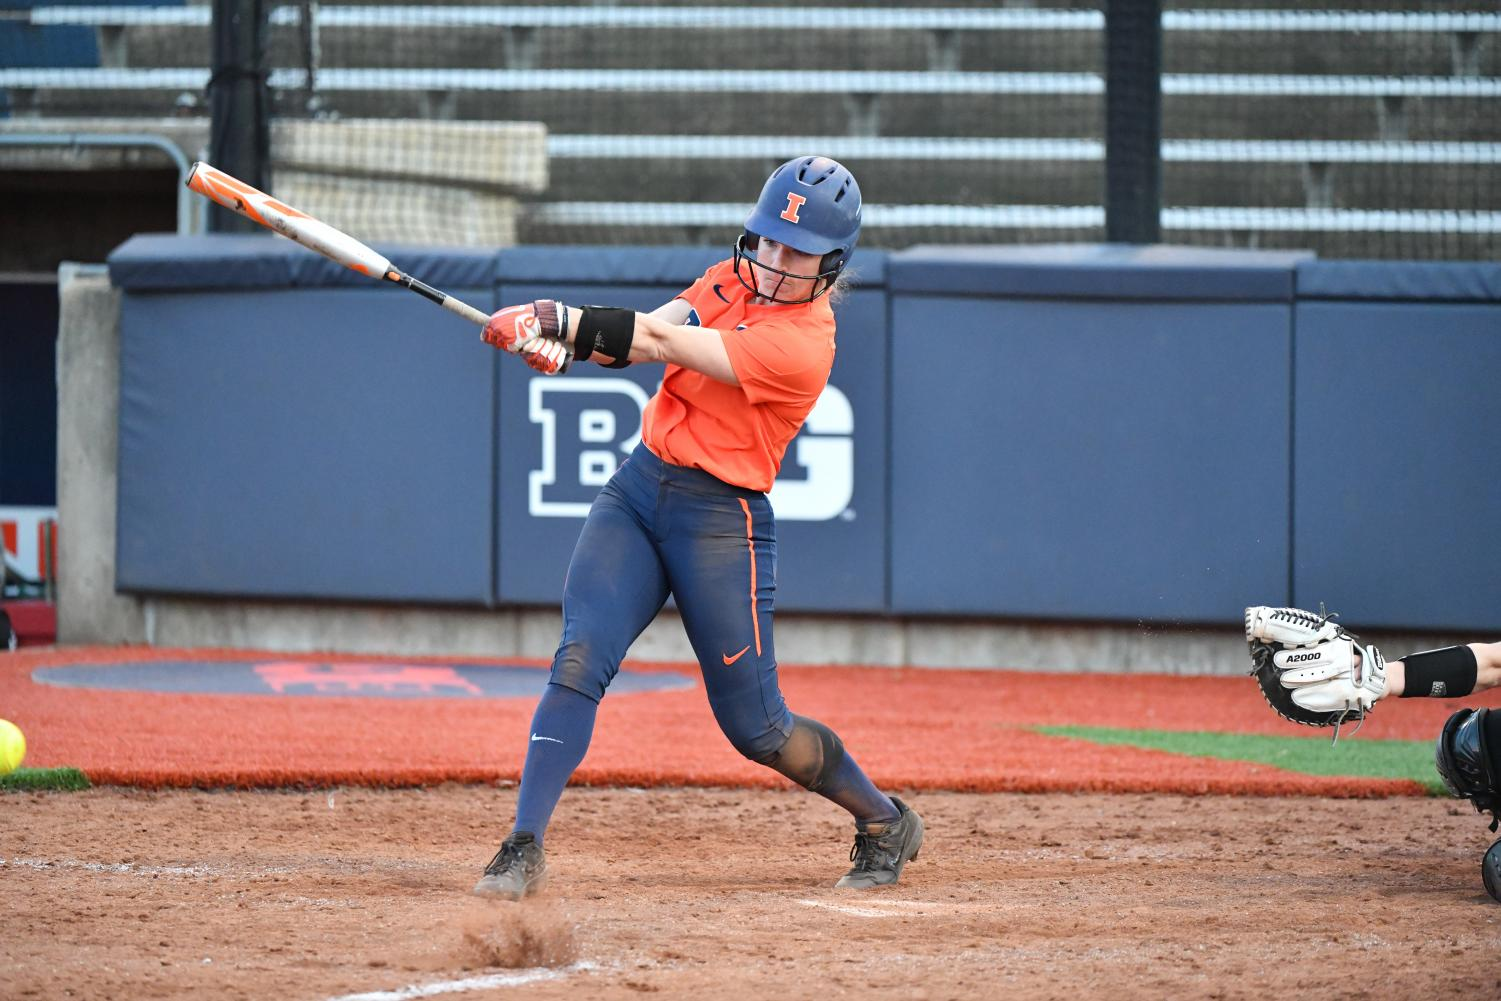 Senior Annie Fleming swings at a pitch during Illinois' three-game home series against Wisconsin last weekend at Eichelberger Field. The Illini are on a three-game win streak after beating Eastern Illinois University at home Tuesday night, 8-7.